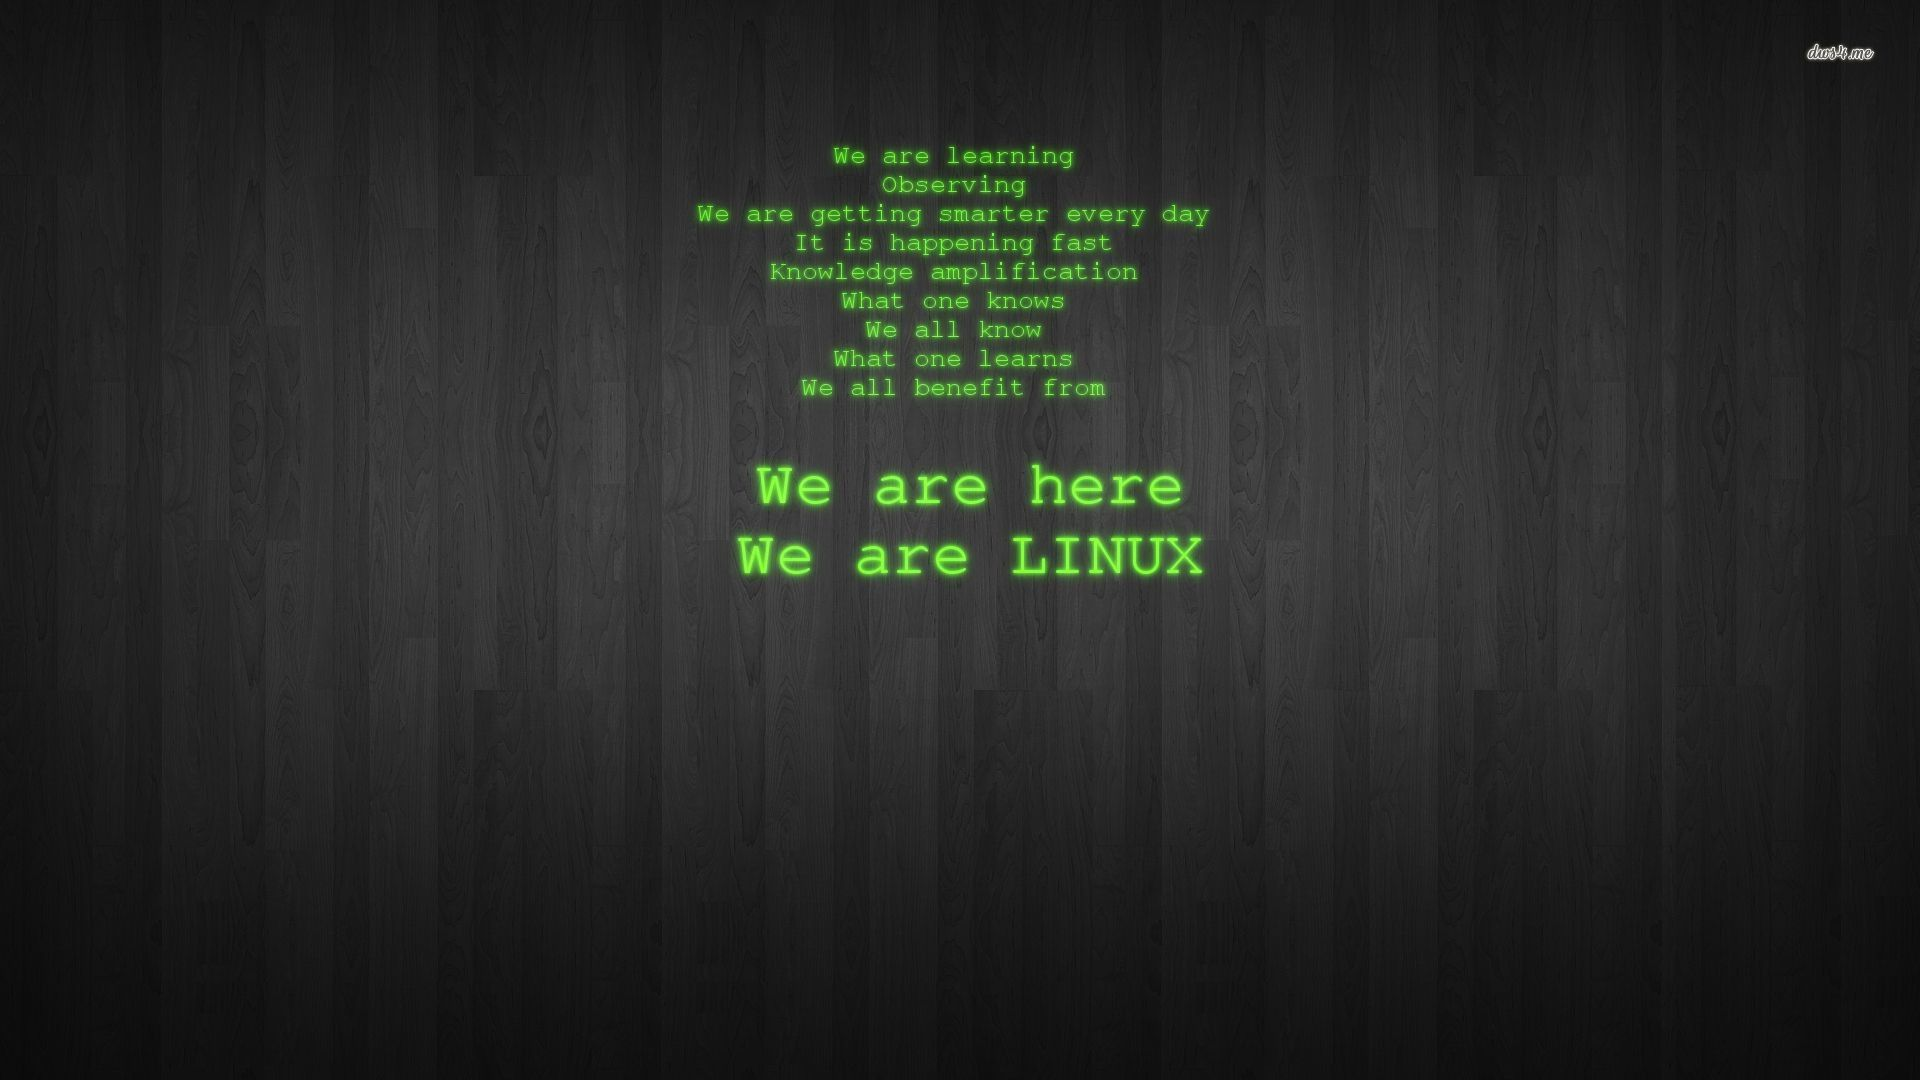 Res 1920x1080 Linux Hd Wallpapers Backgrounds Wallpaper 1920a 1080 Best Linux Wallpapers 47 Wallpapers Linux Linux Mint Hd Wallpaper